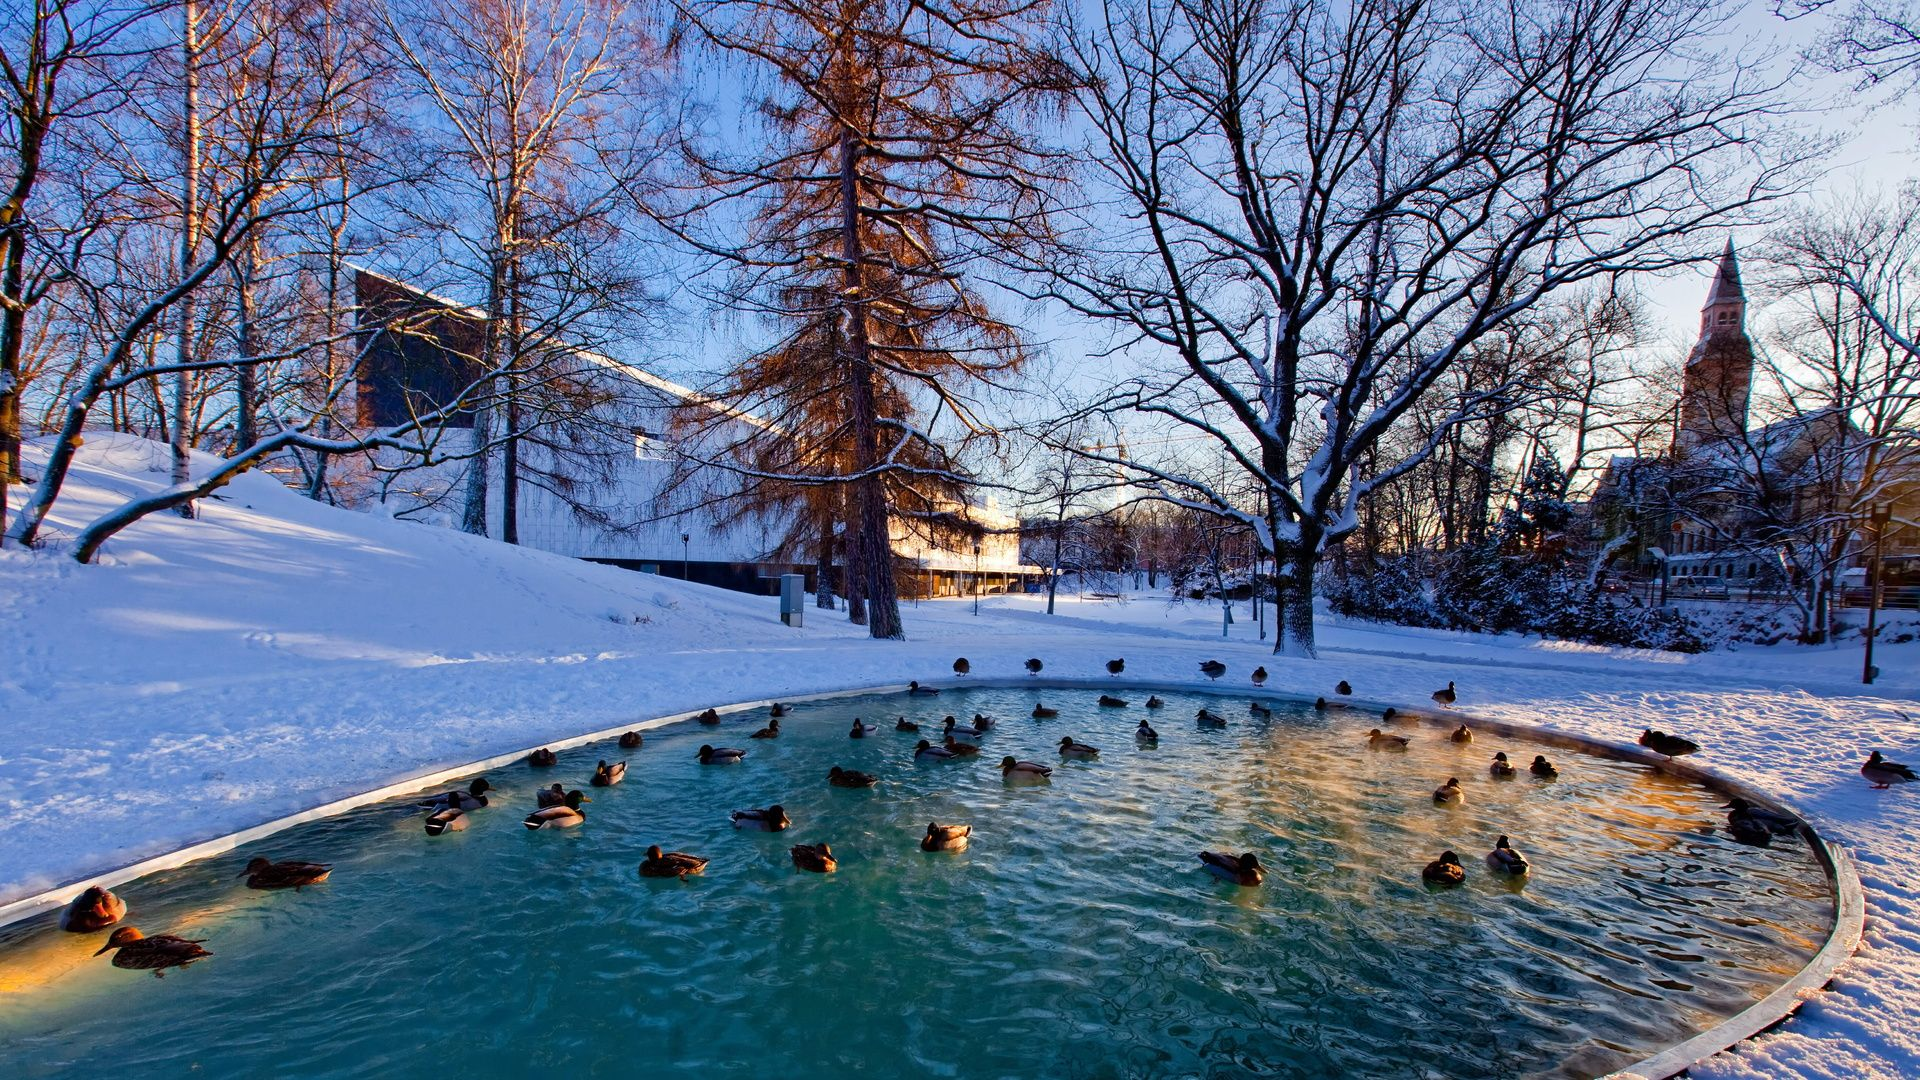 Superior Ducks In A City Park Pond In Winter